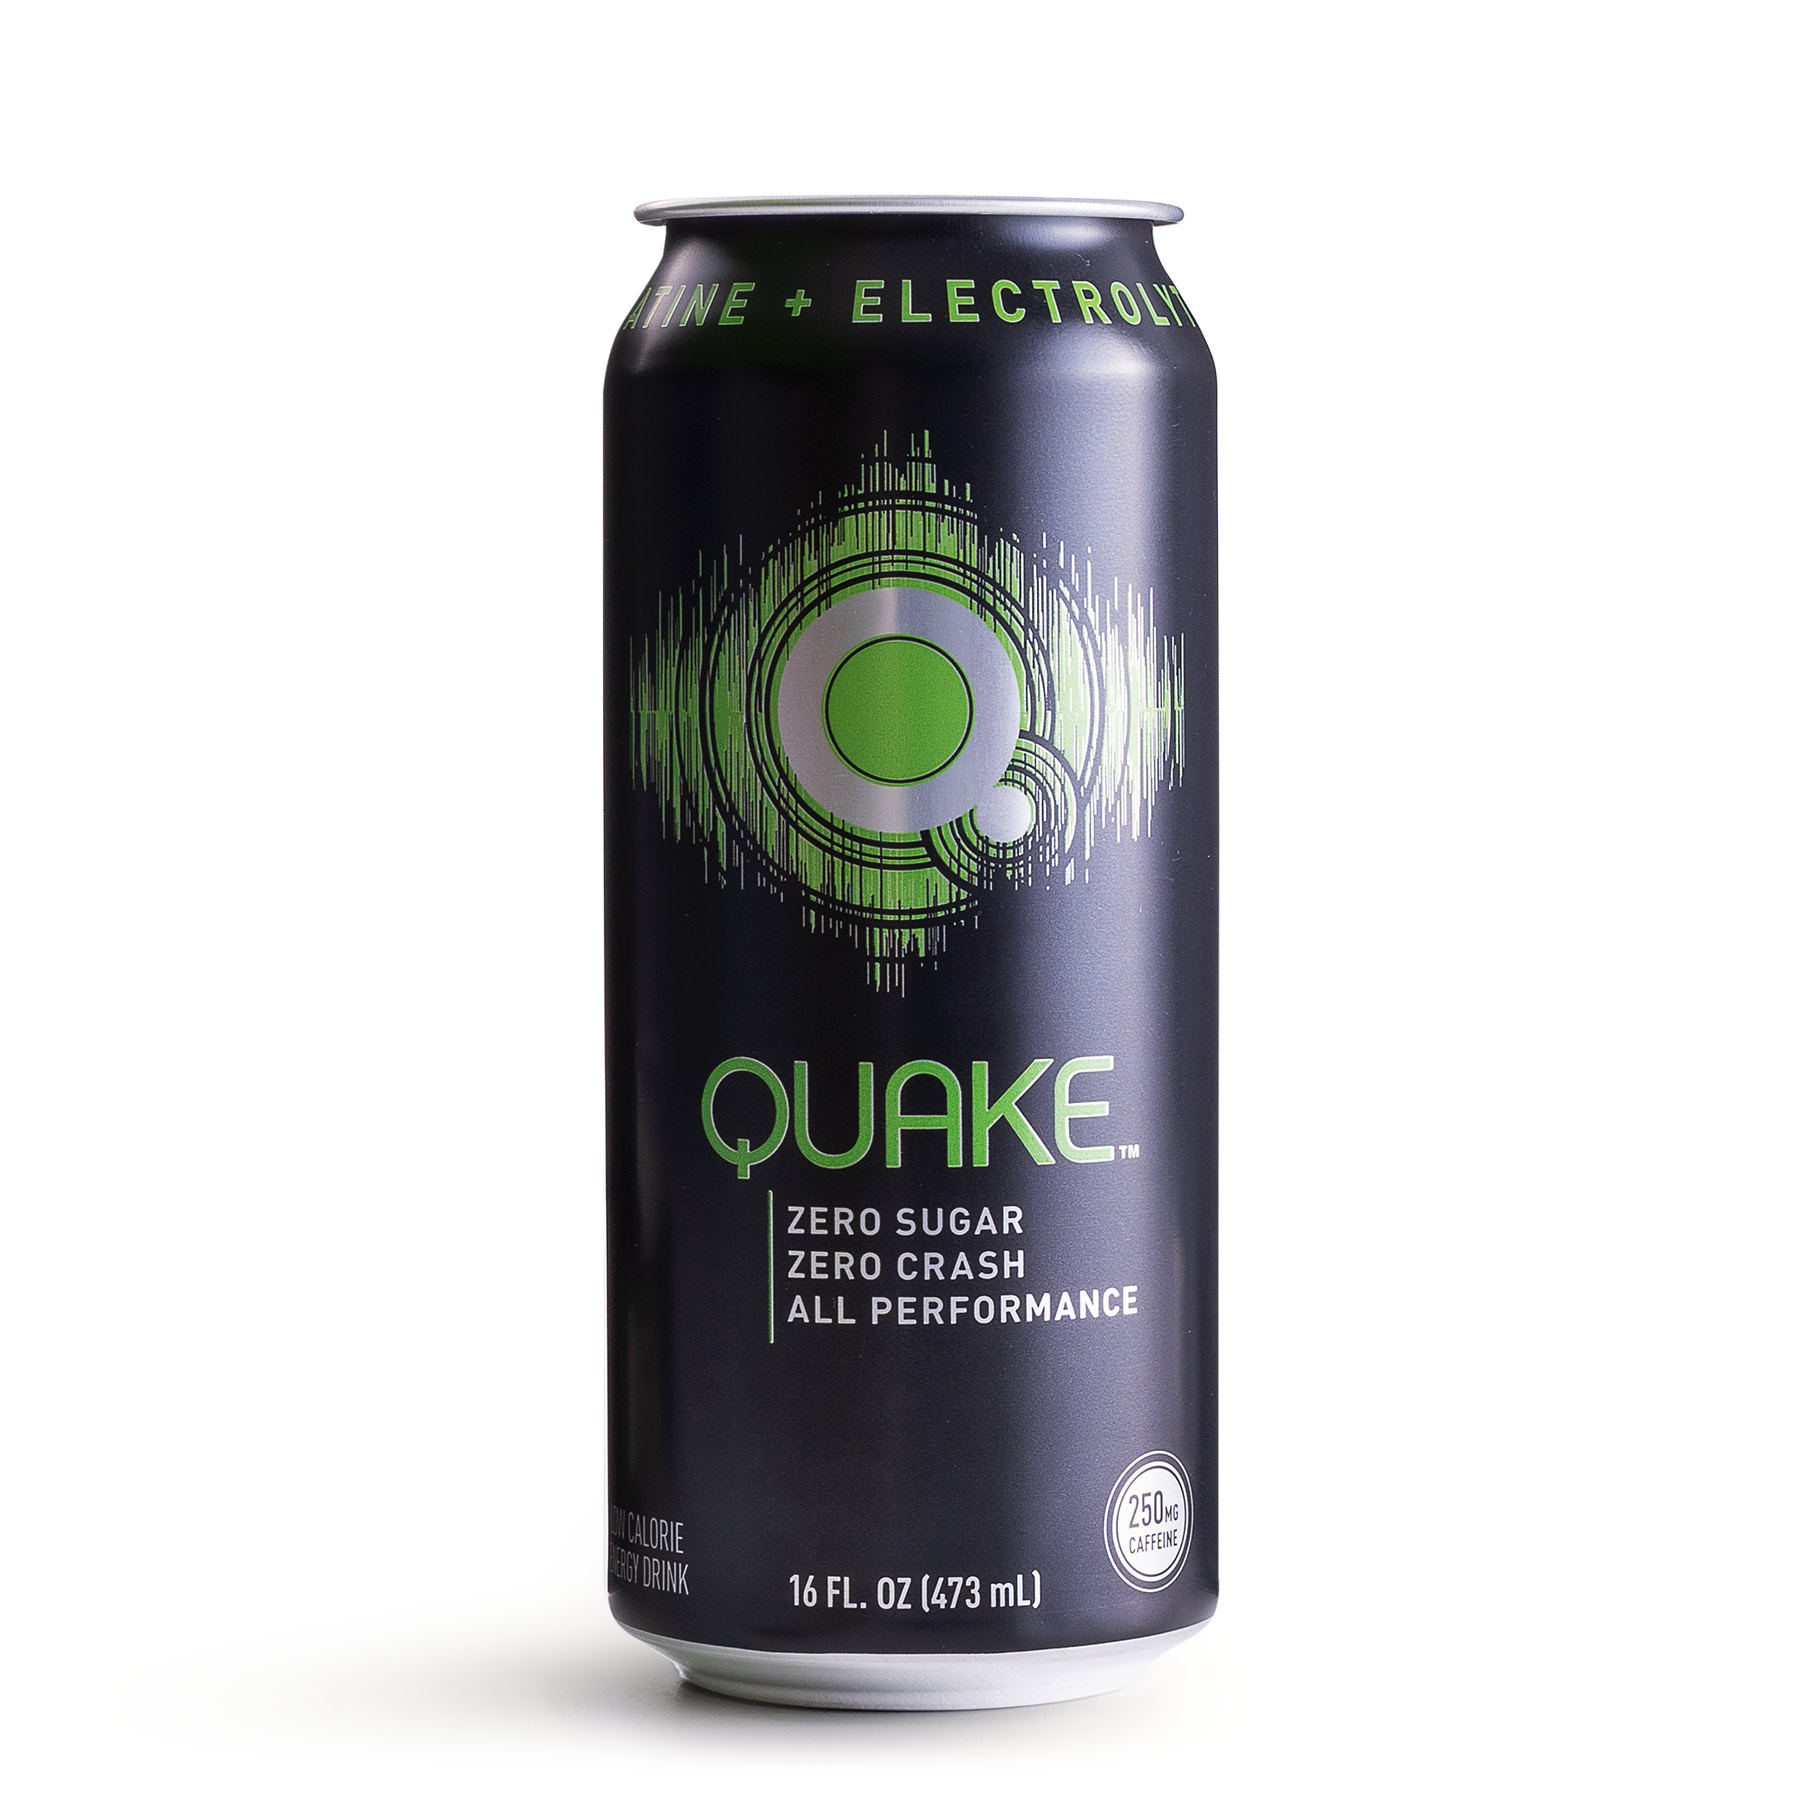 A single 16fl. oz can of Quake energy drink in original flavor.